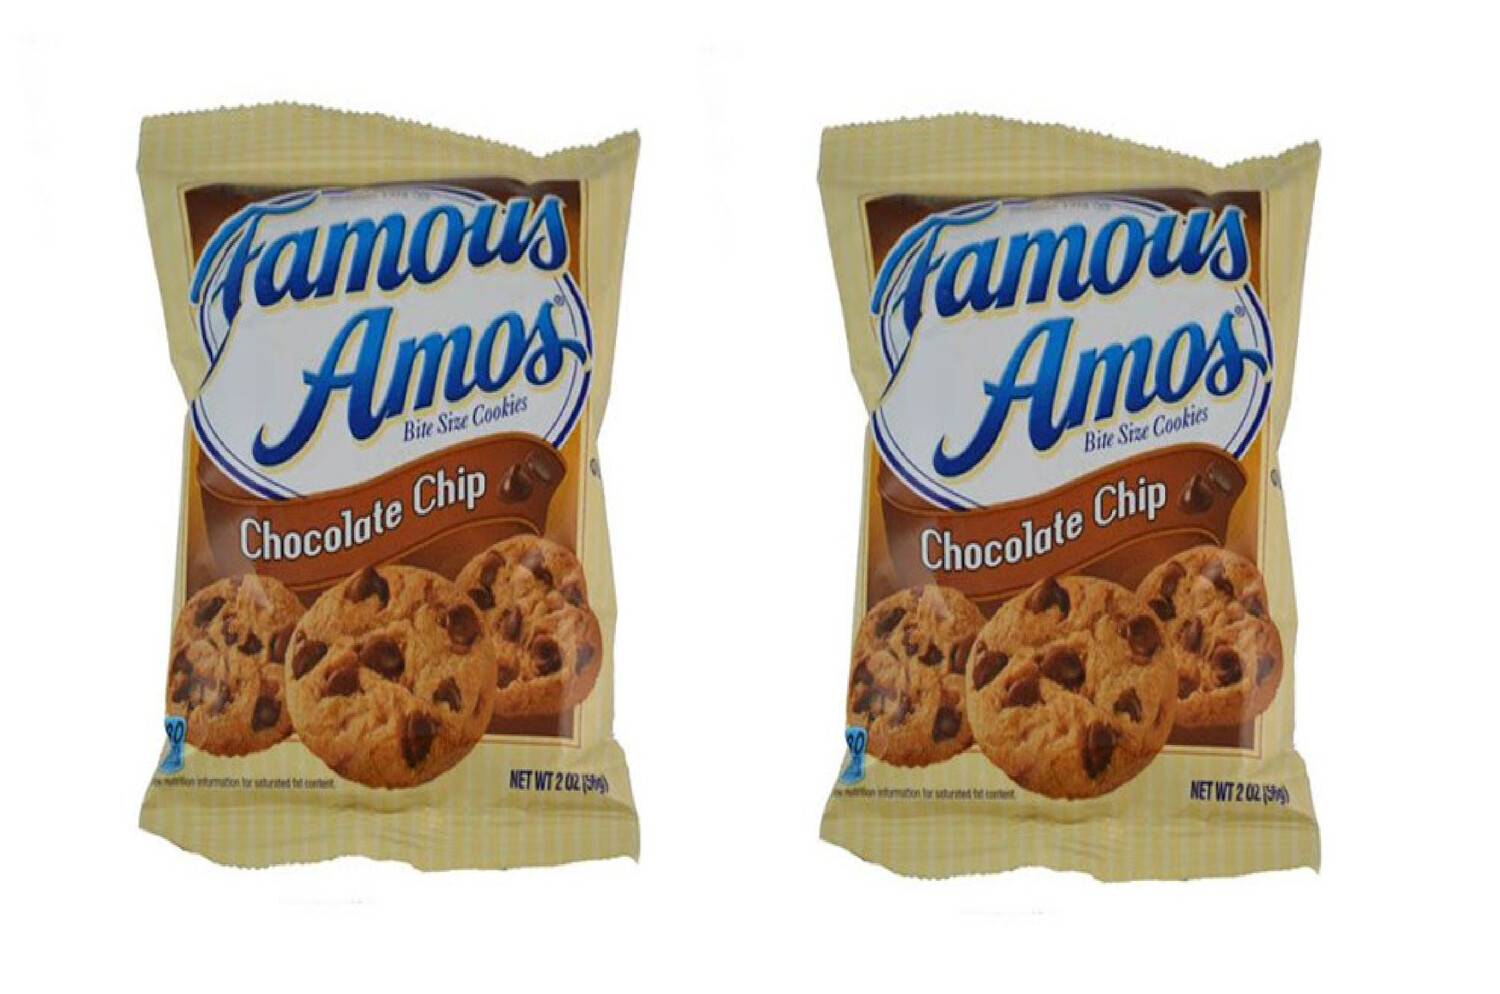 Galletas Famous Amos Bite Size Cookies Chocolate Chip 56gr  2Pack